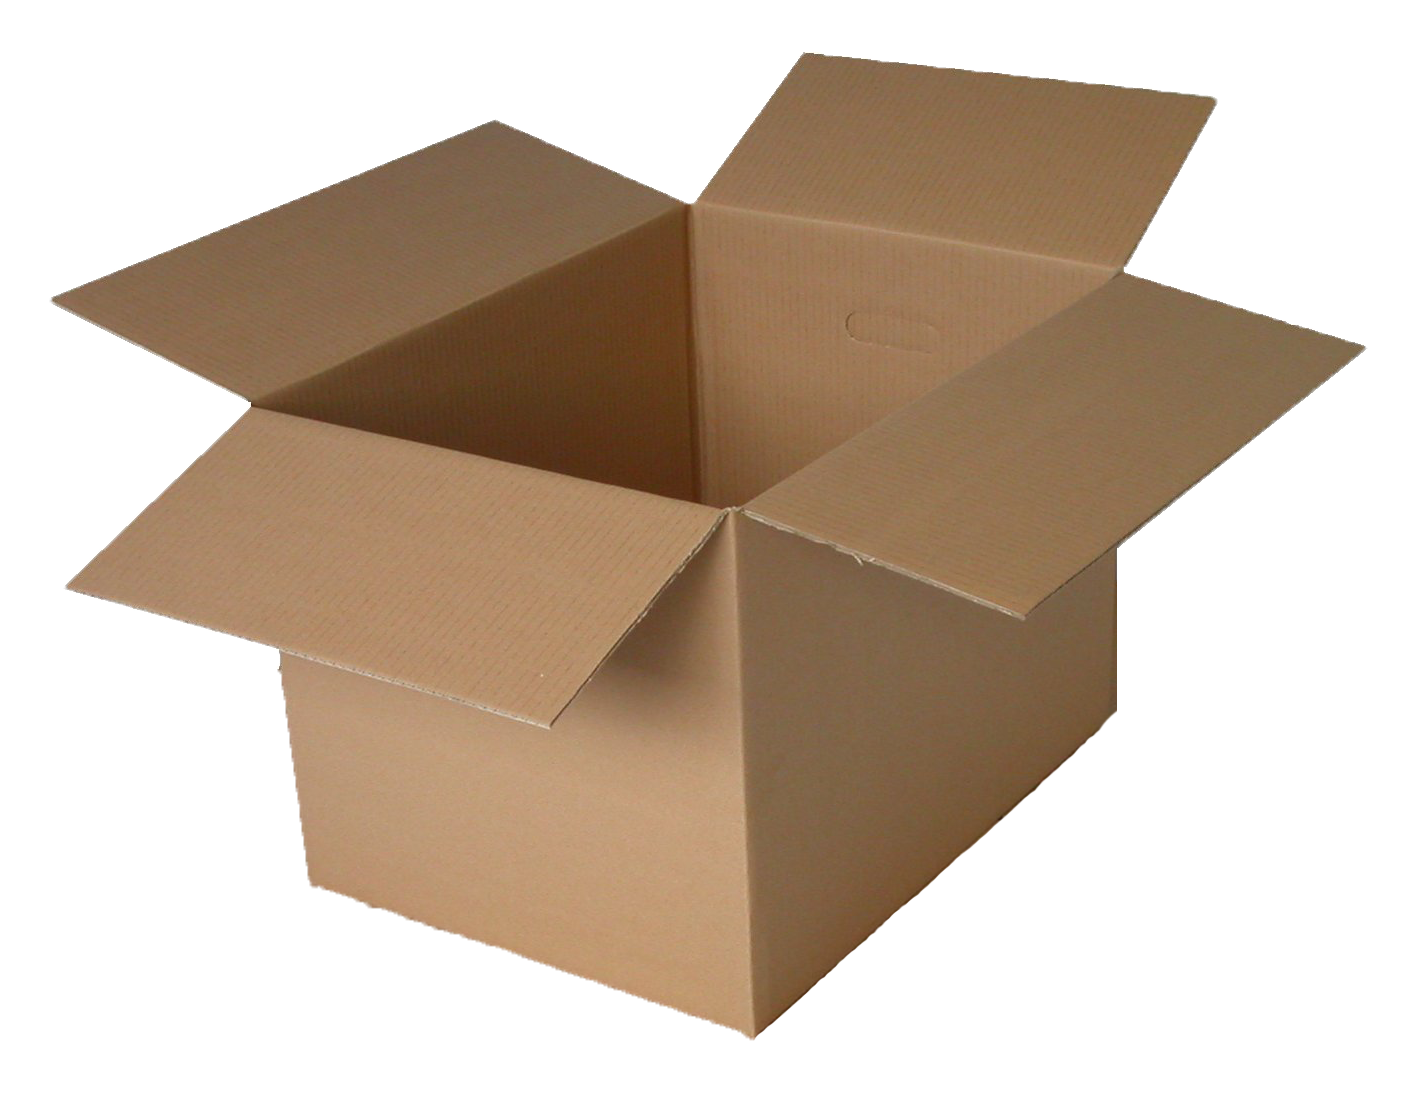 performance of cardboard carton forms Pratt pra0023 100% recycled corrugated cardboard box, 9 length x 6 width  x  and graded for compressive strength which aids in stacking performance.